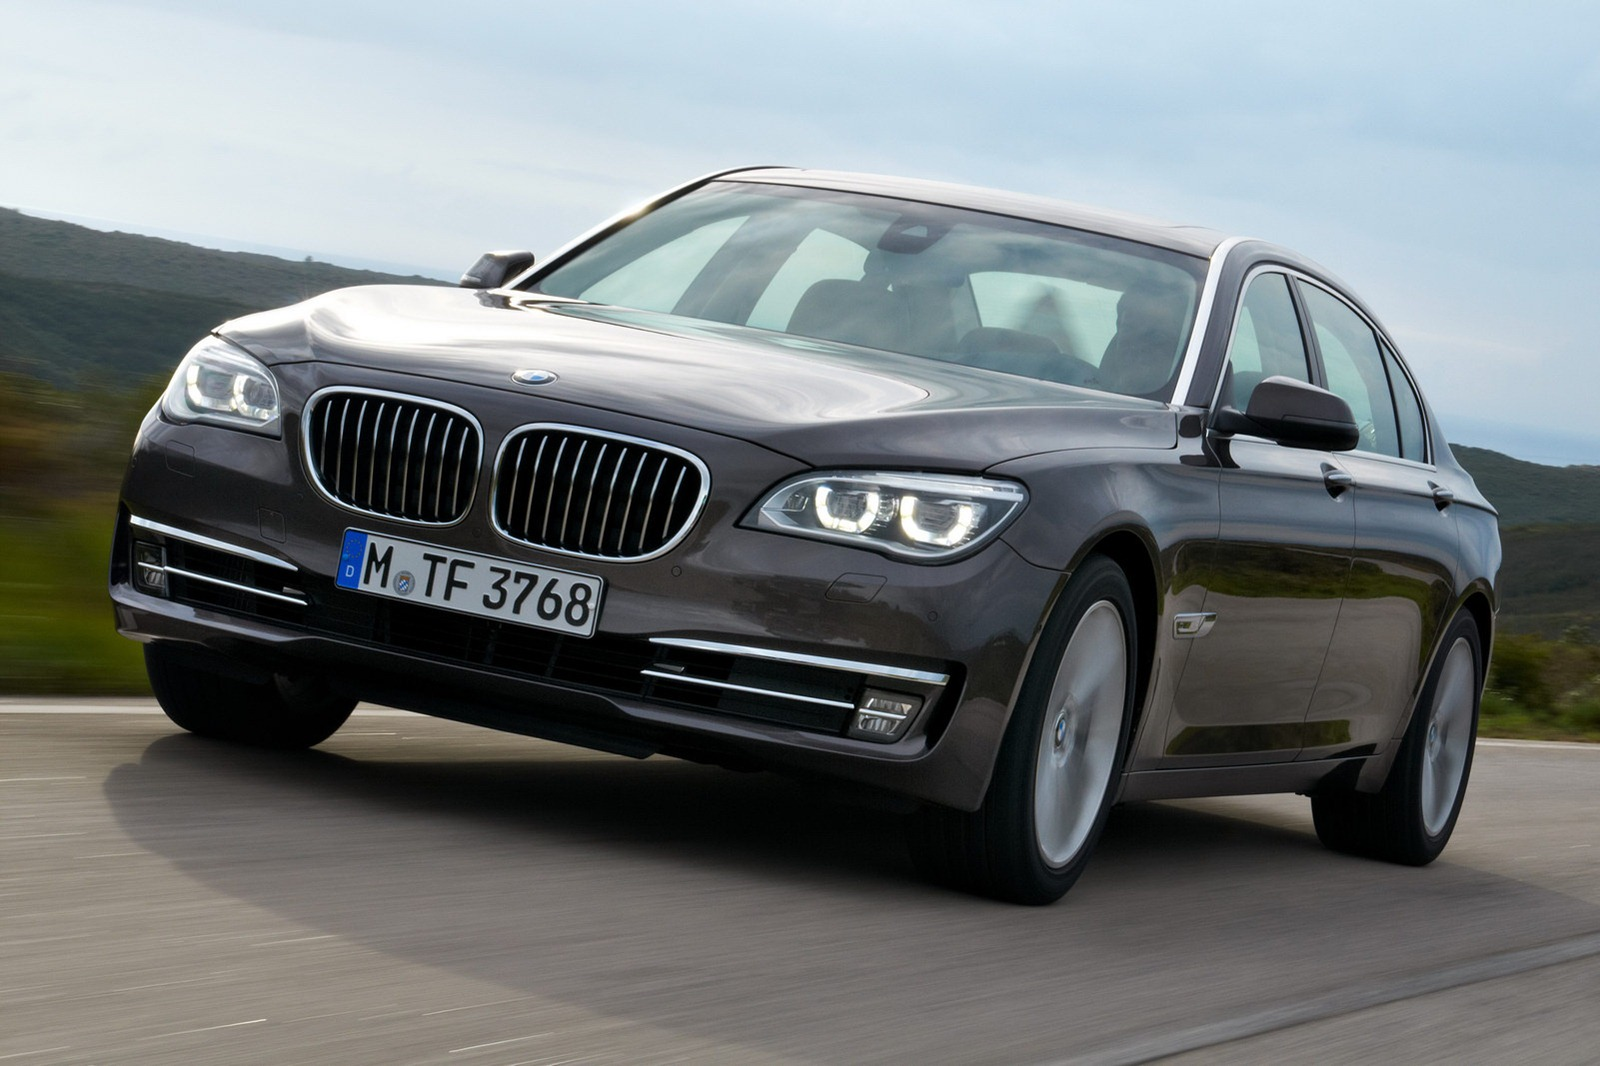 Town country bmw mini markham blog this just in official 2013 bmw 7 series lci facelift